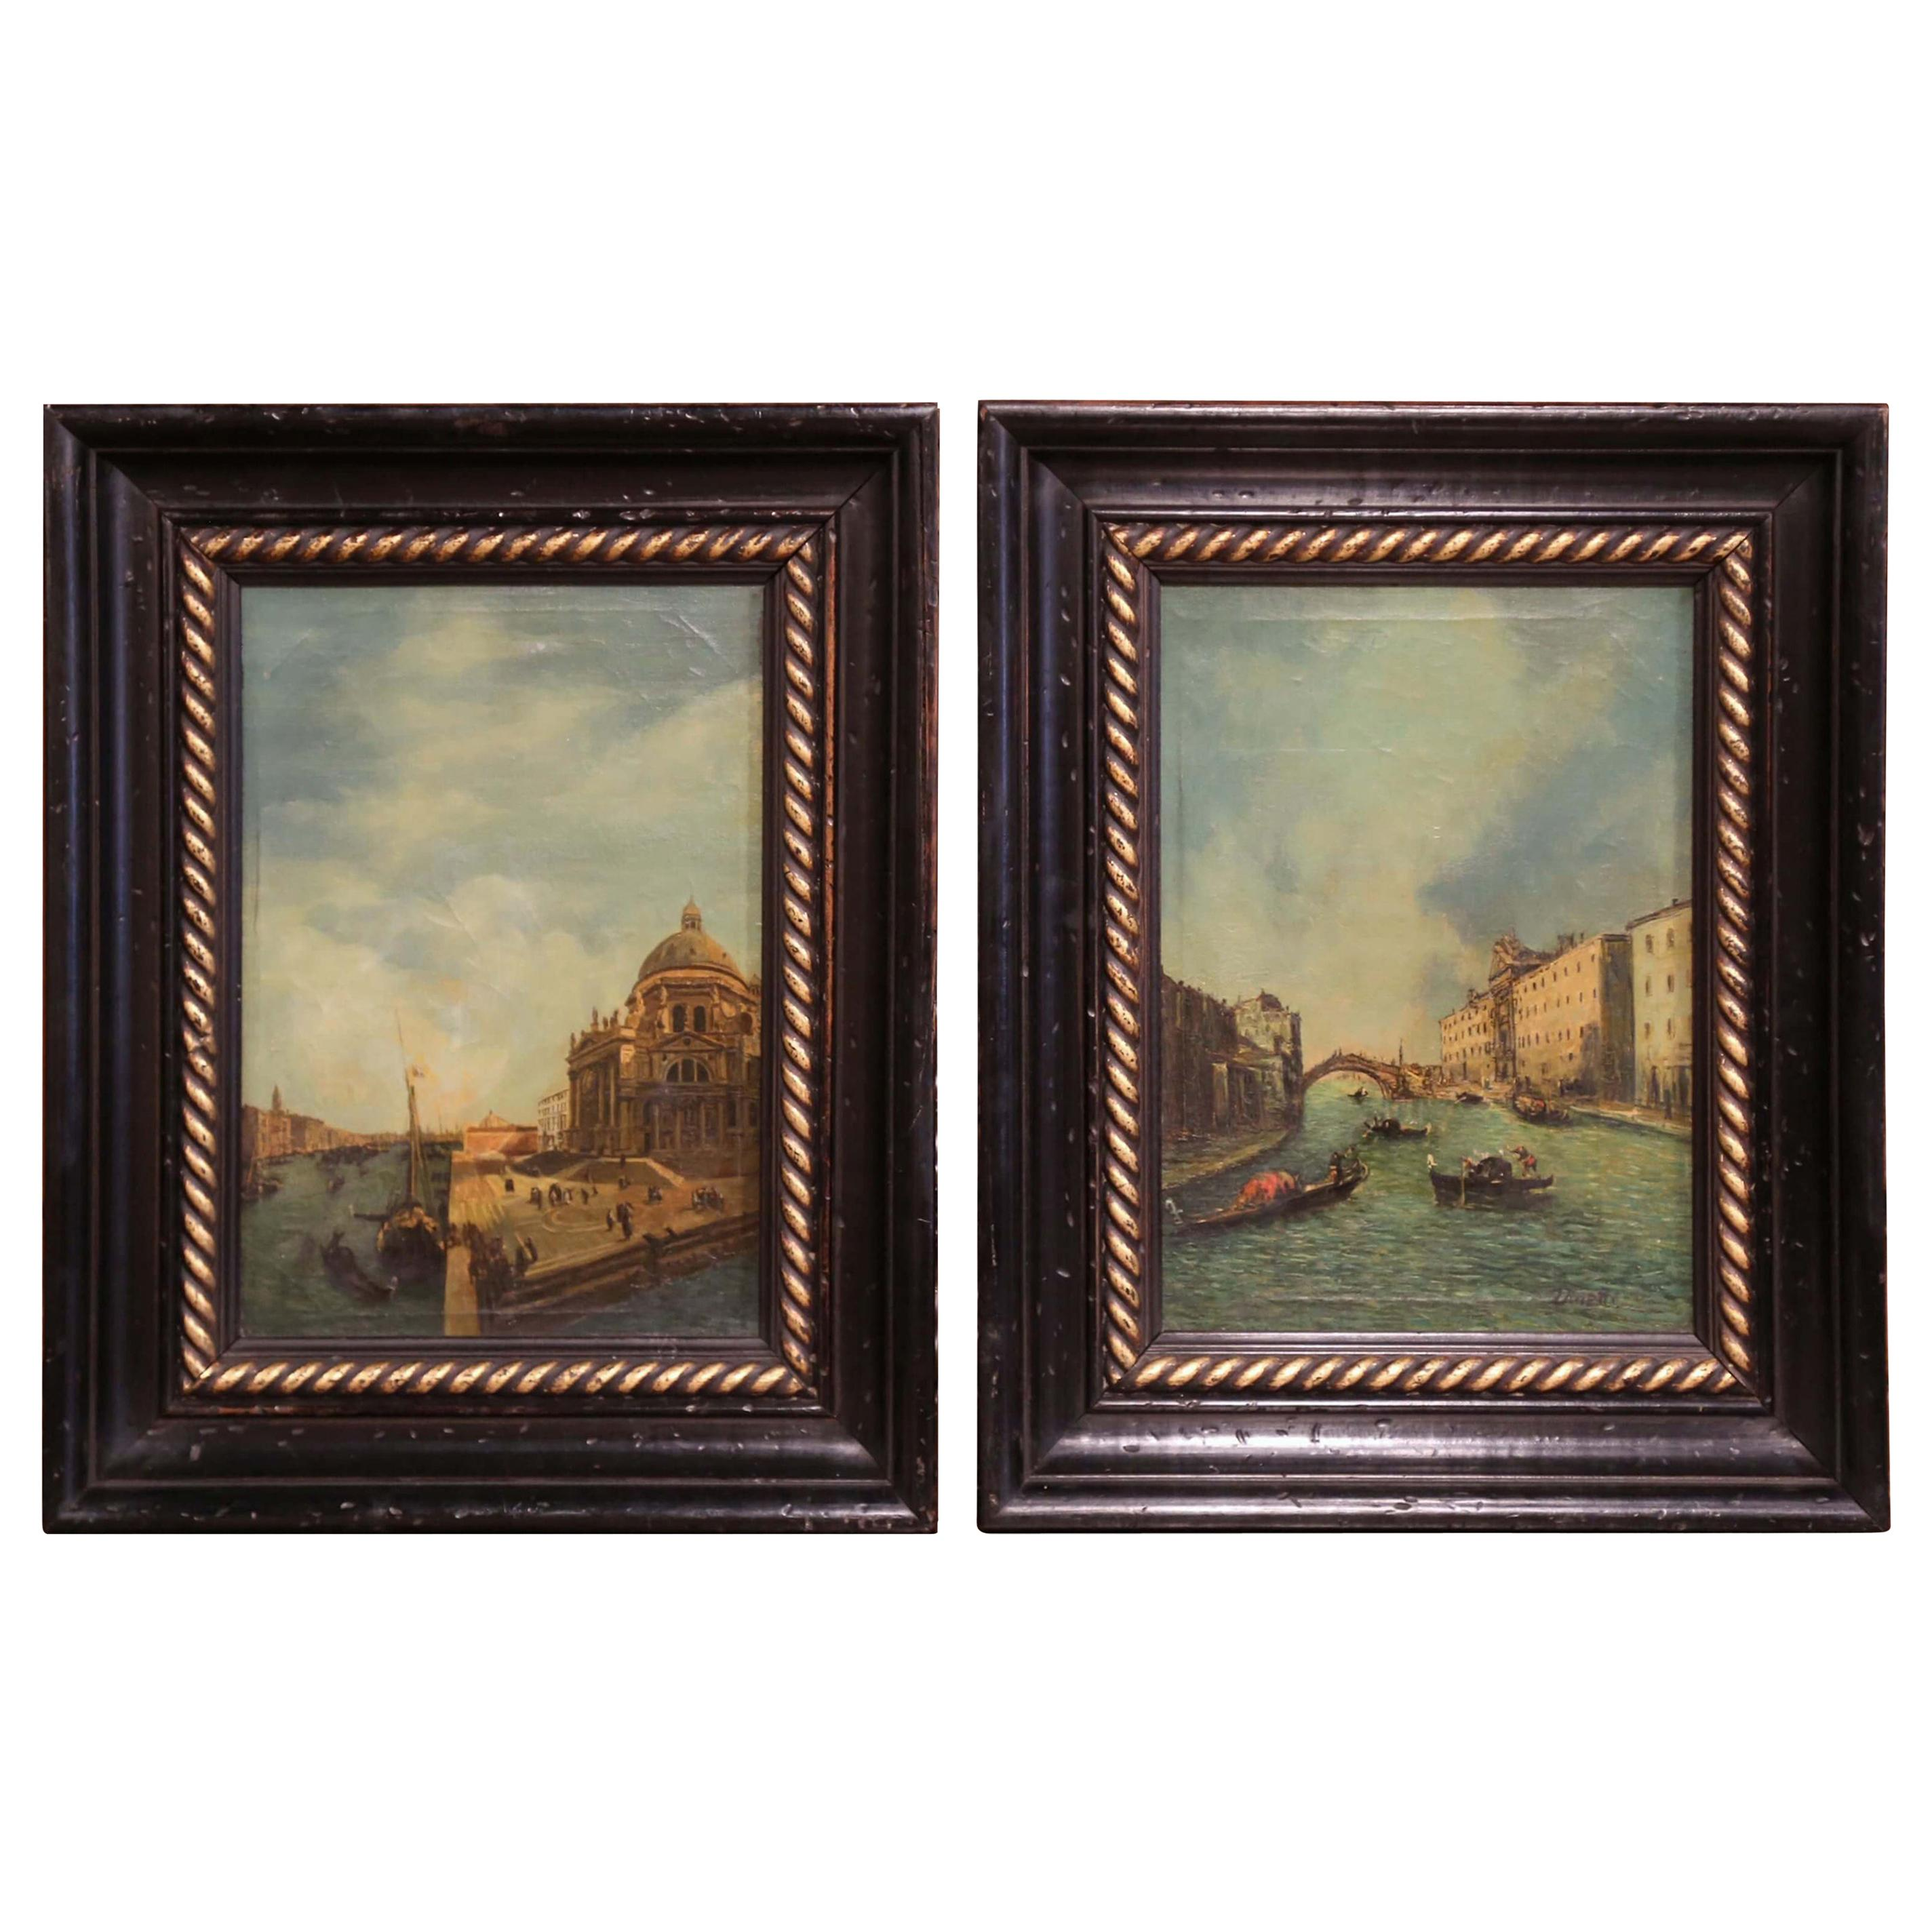 Pair of 19th Century Framed Oil on Canvas Venetian Scene Painting Signed Zanetti